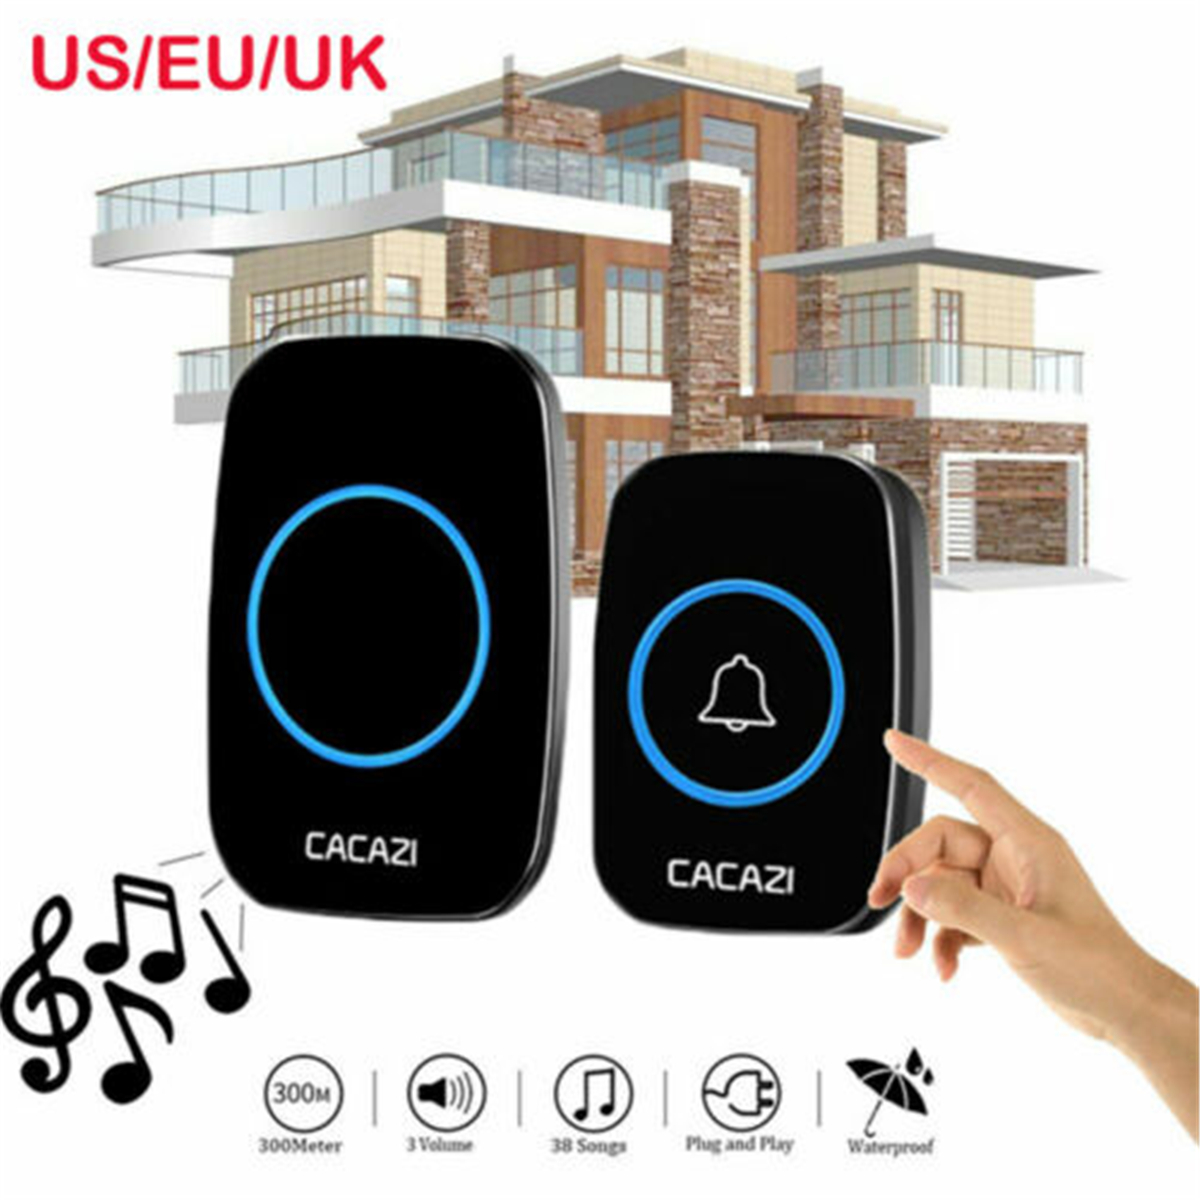 Home Wireless Doorbell Smart LED Light Calling Bell 2 Receiver and 1 Transmitter For Home Office Hospital SchoolHome Wireless Doorbell Smart LED Light Calling Bell 2 Receiver and 1 Transmitter For Home Office Hospital School